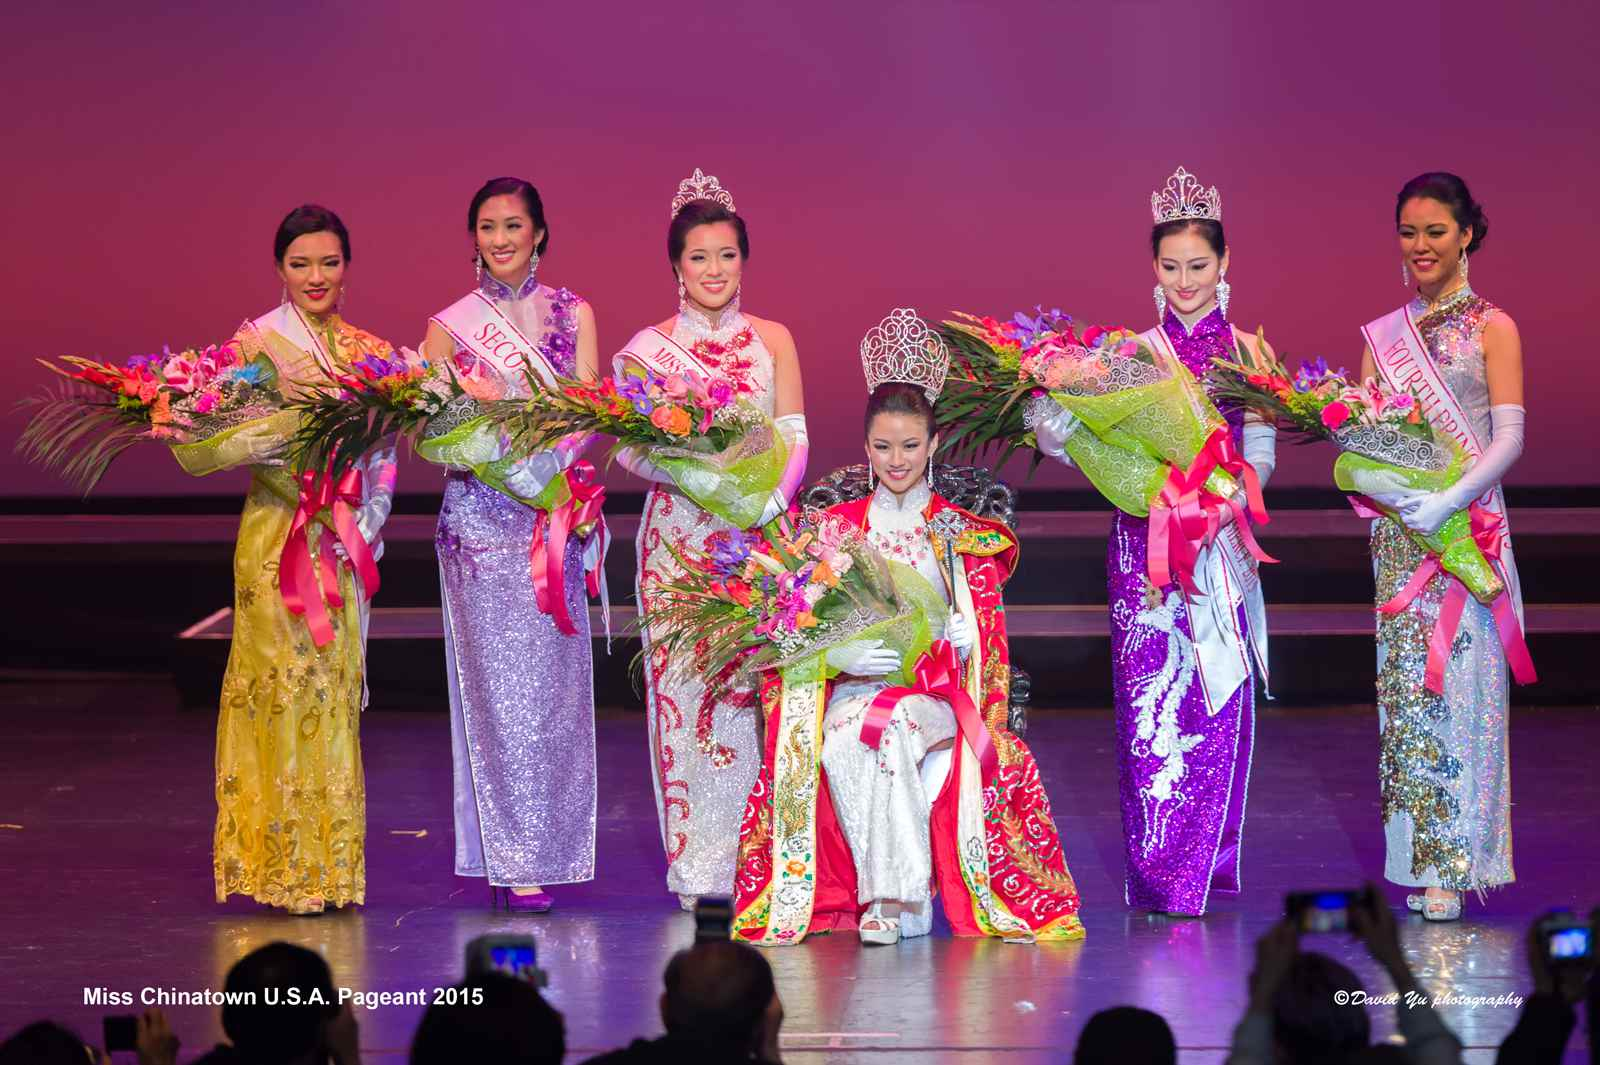 Miss Chinatown U.S.A. Pageant